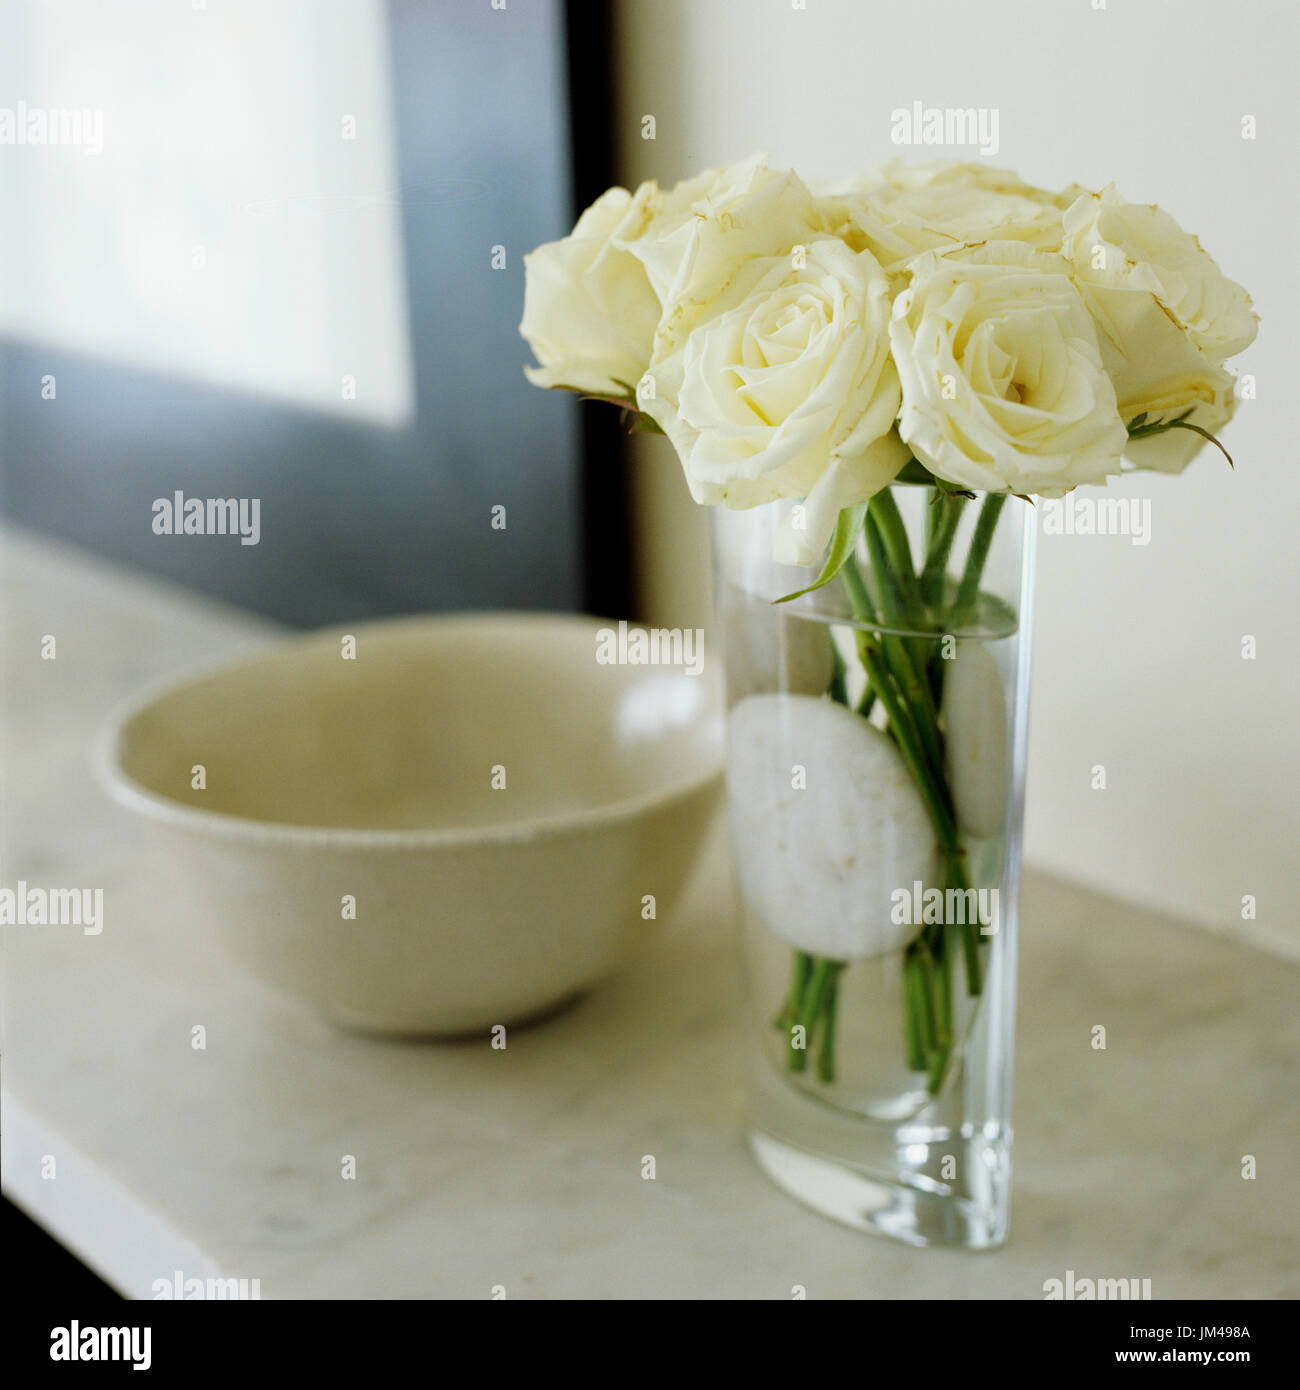 White flowers in vase - Stock Image